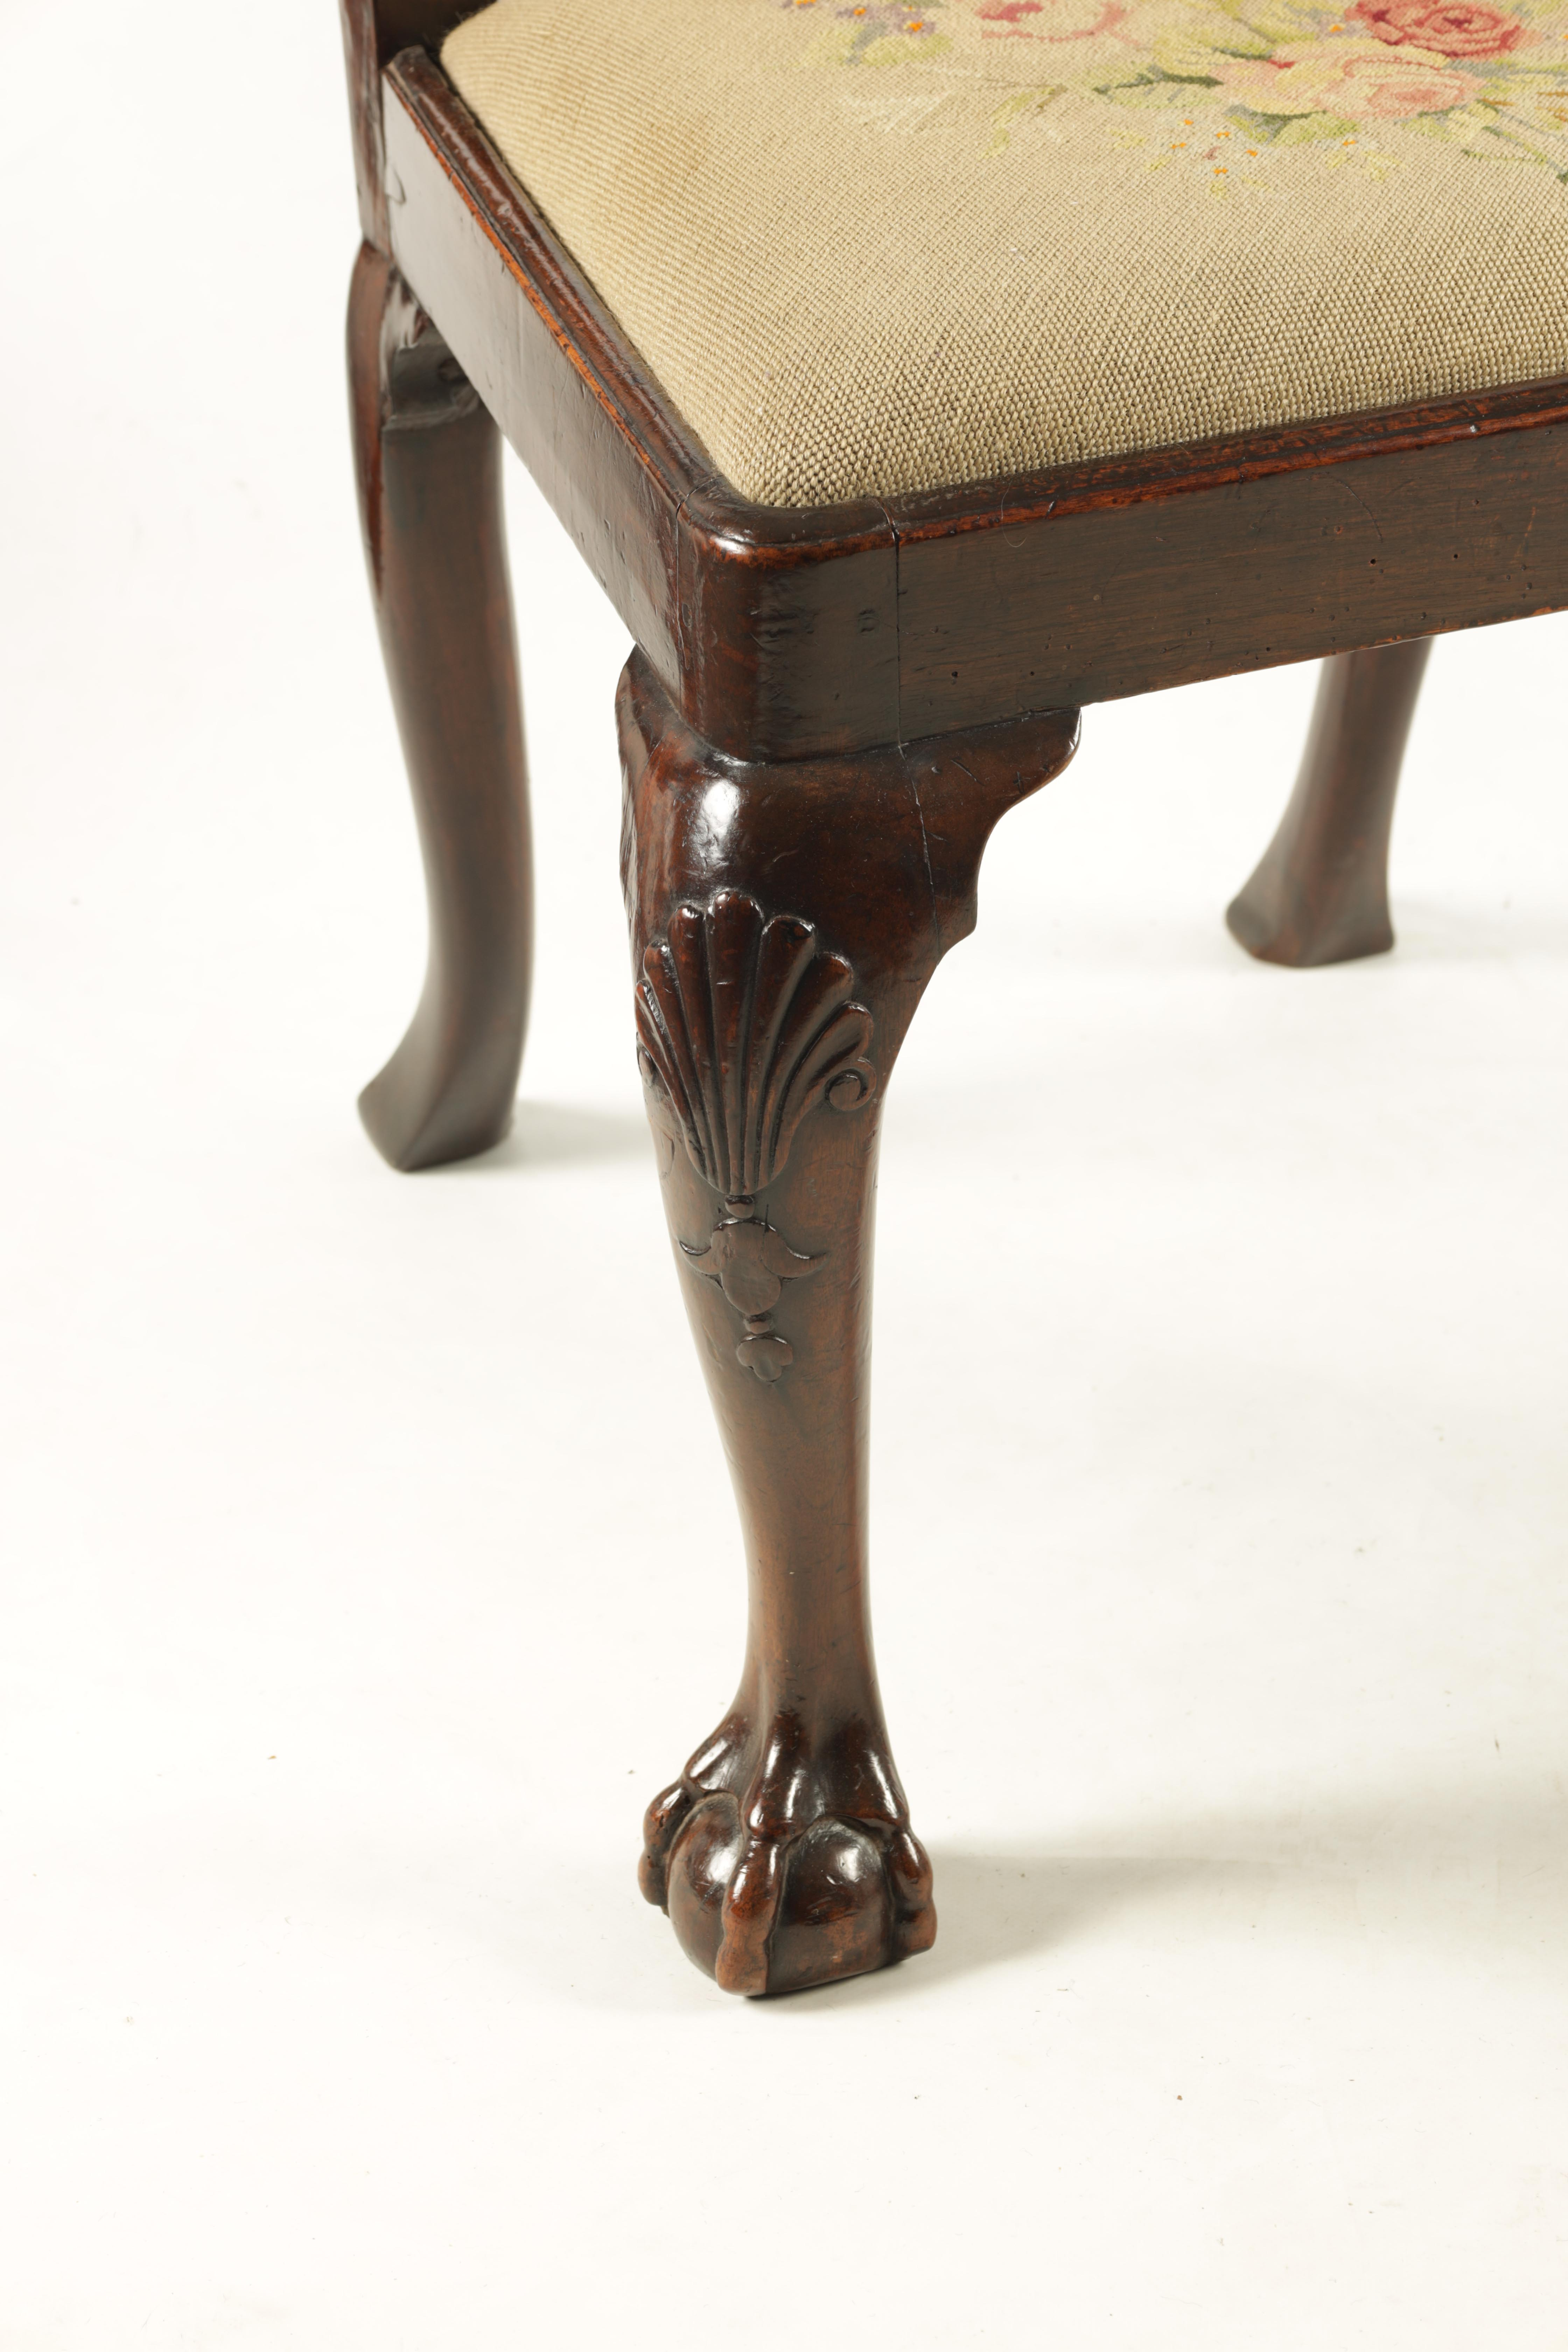 A PAIR OF GEORGE I WALNUT SIDE CHAIRS with leaf carved and scrolled top rails above vase-shaped - Image 2 of 12